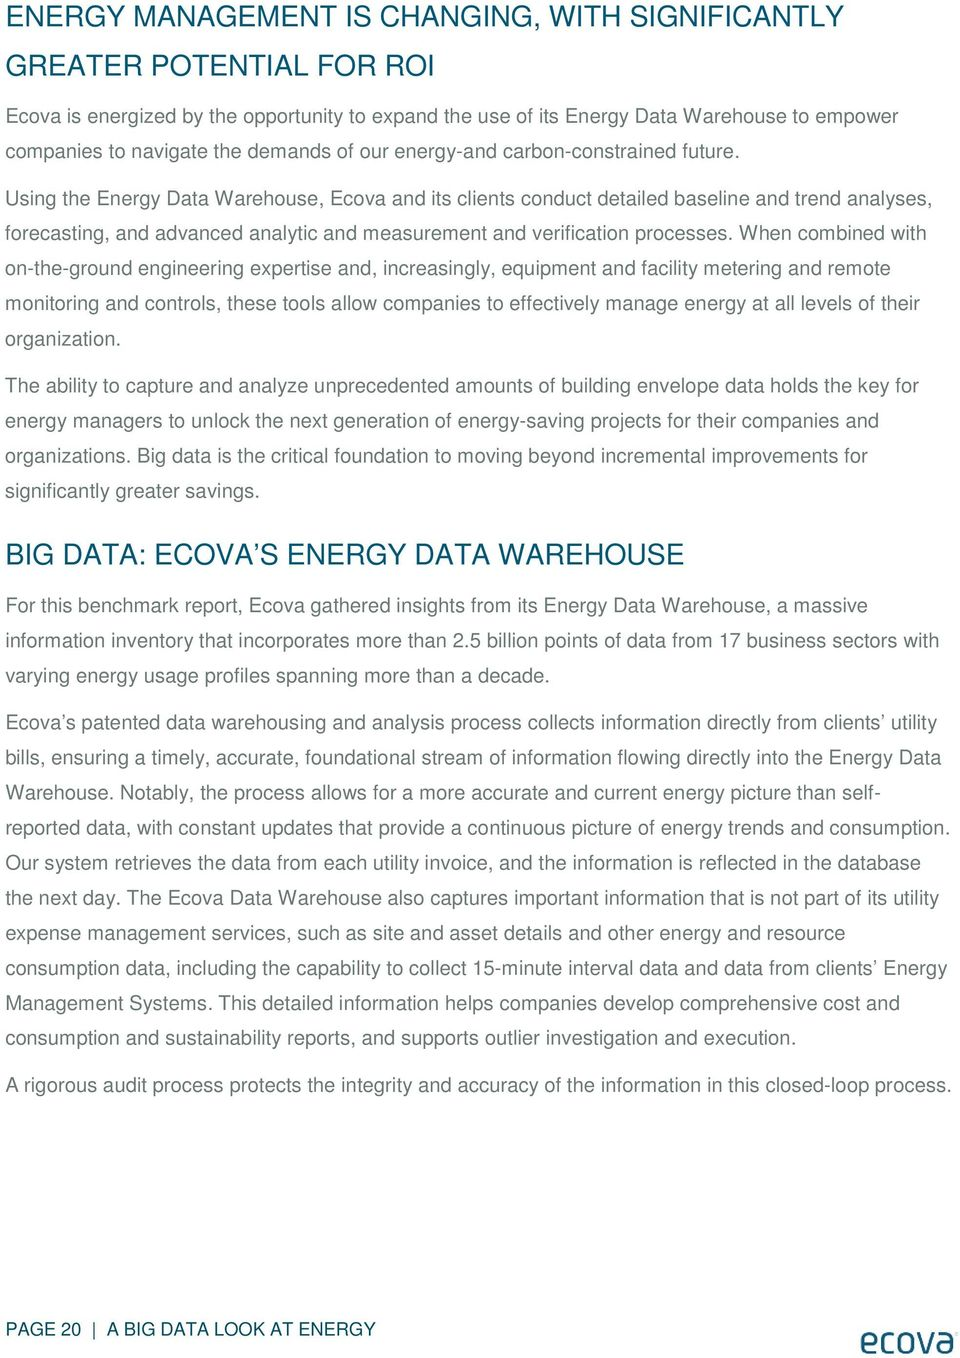 Using the Energy Data Warehouse, Ecova and its clients conduct detailed baseline and trend analyses, forecasting, and advanced analytic and measurement and verification processes.